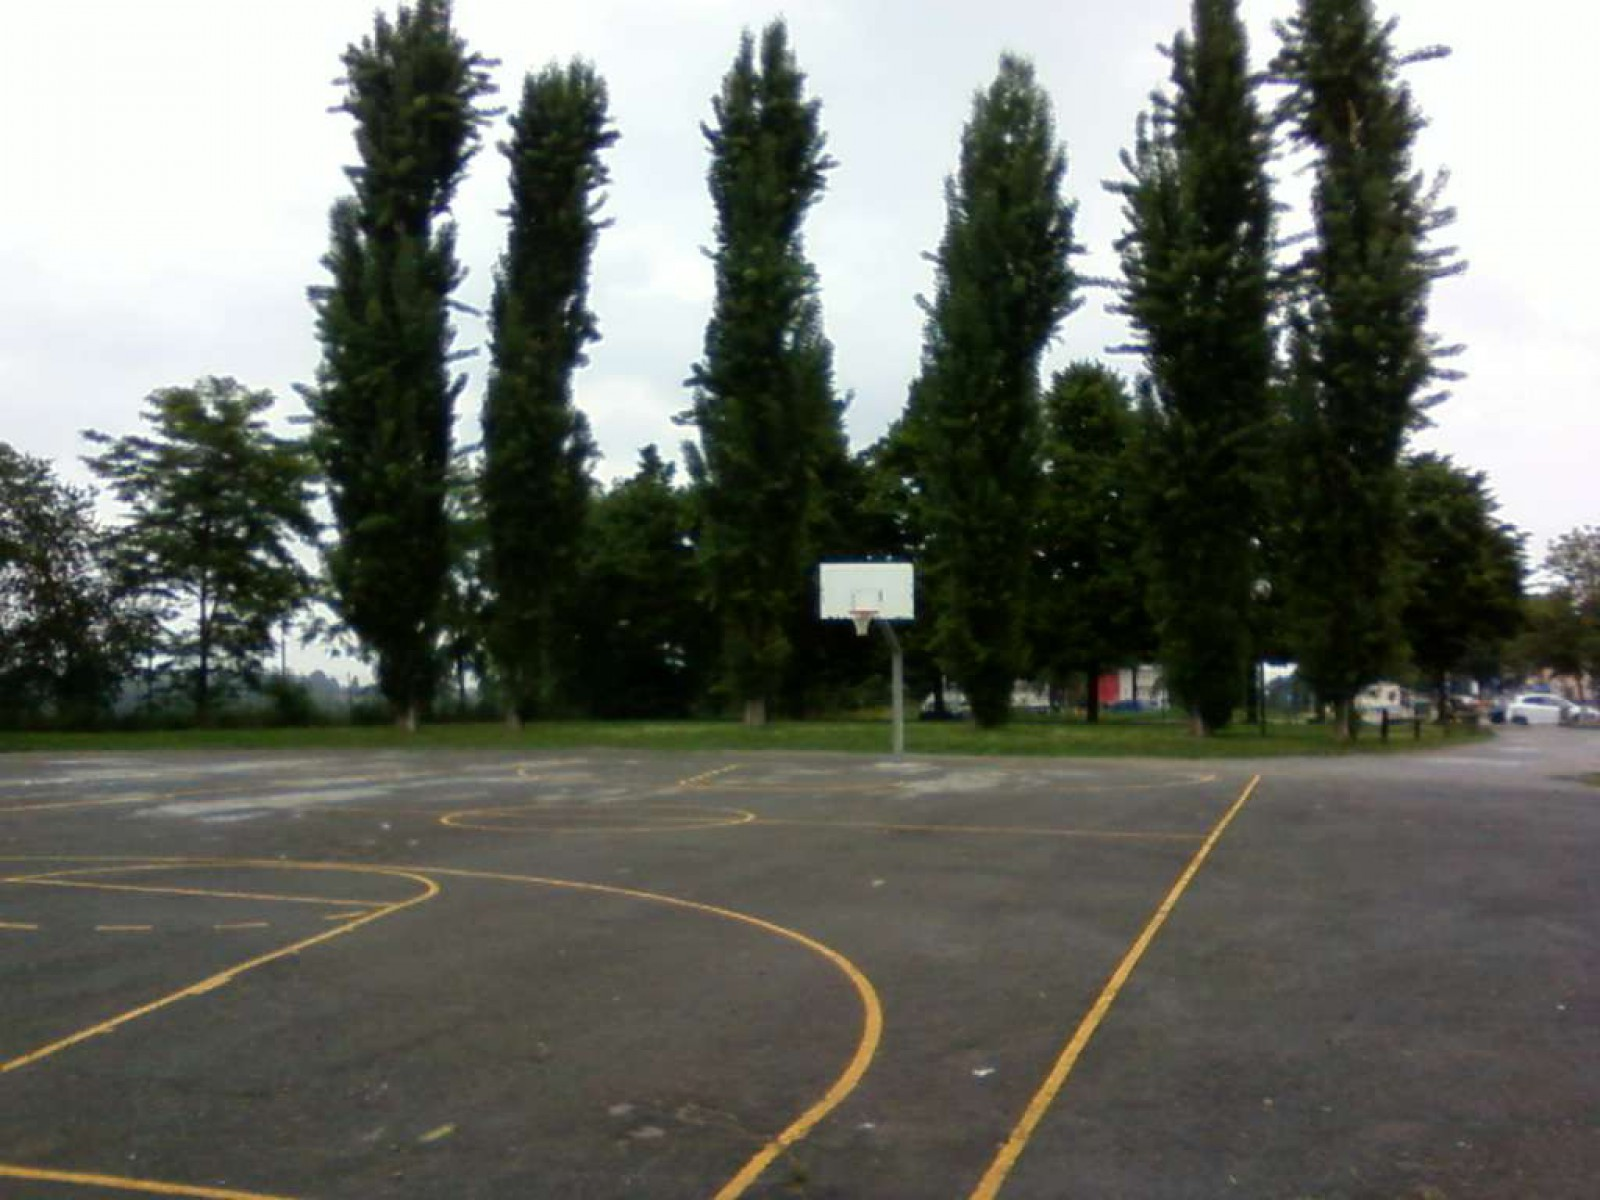 Kennedy Playground, Cuneo, Italy